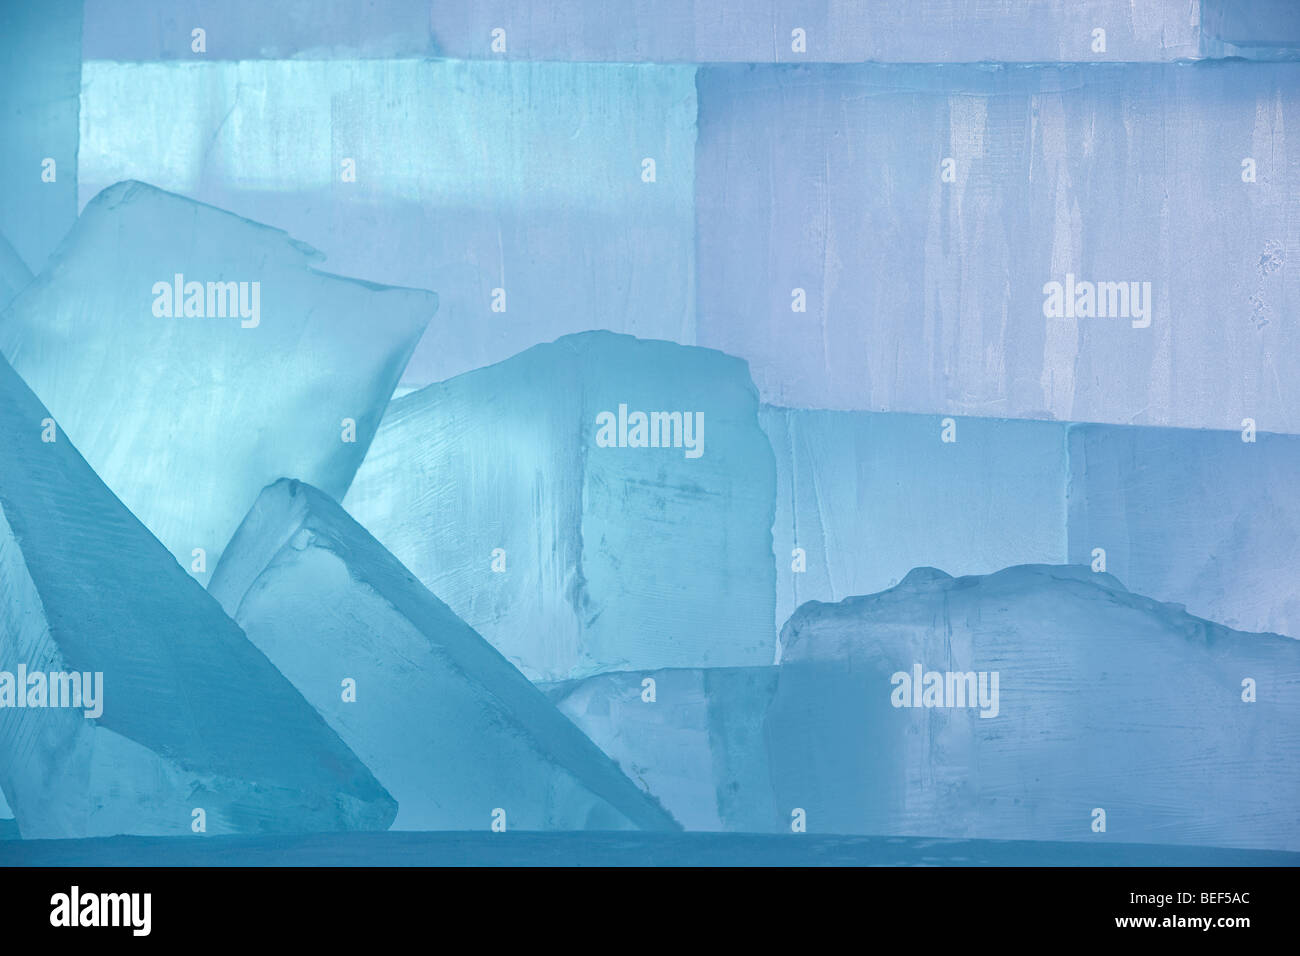 large ice blocks used for building or sculptures